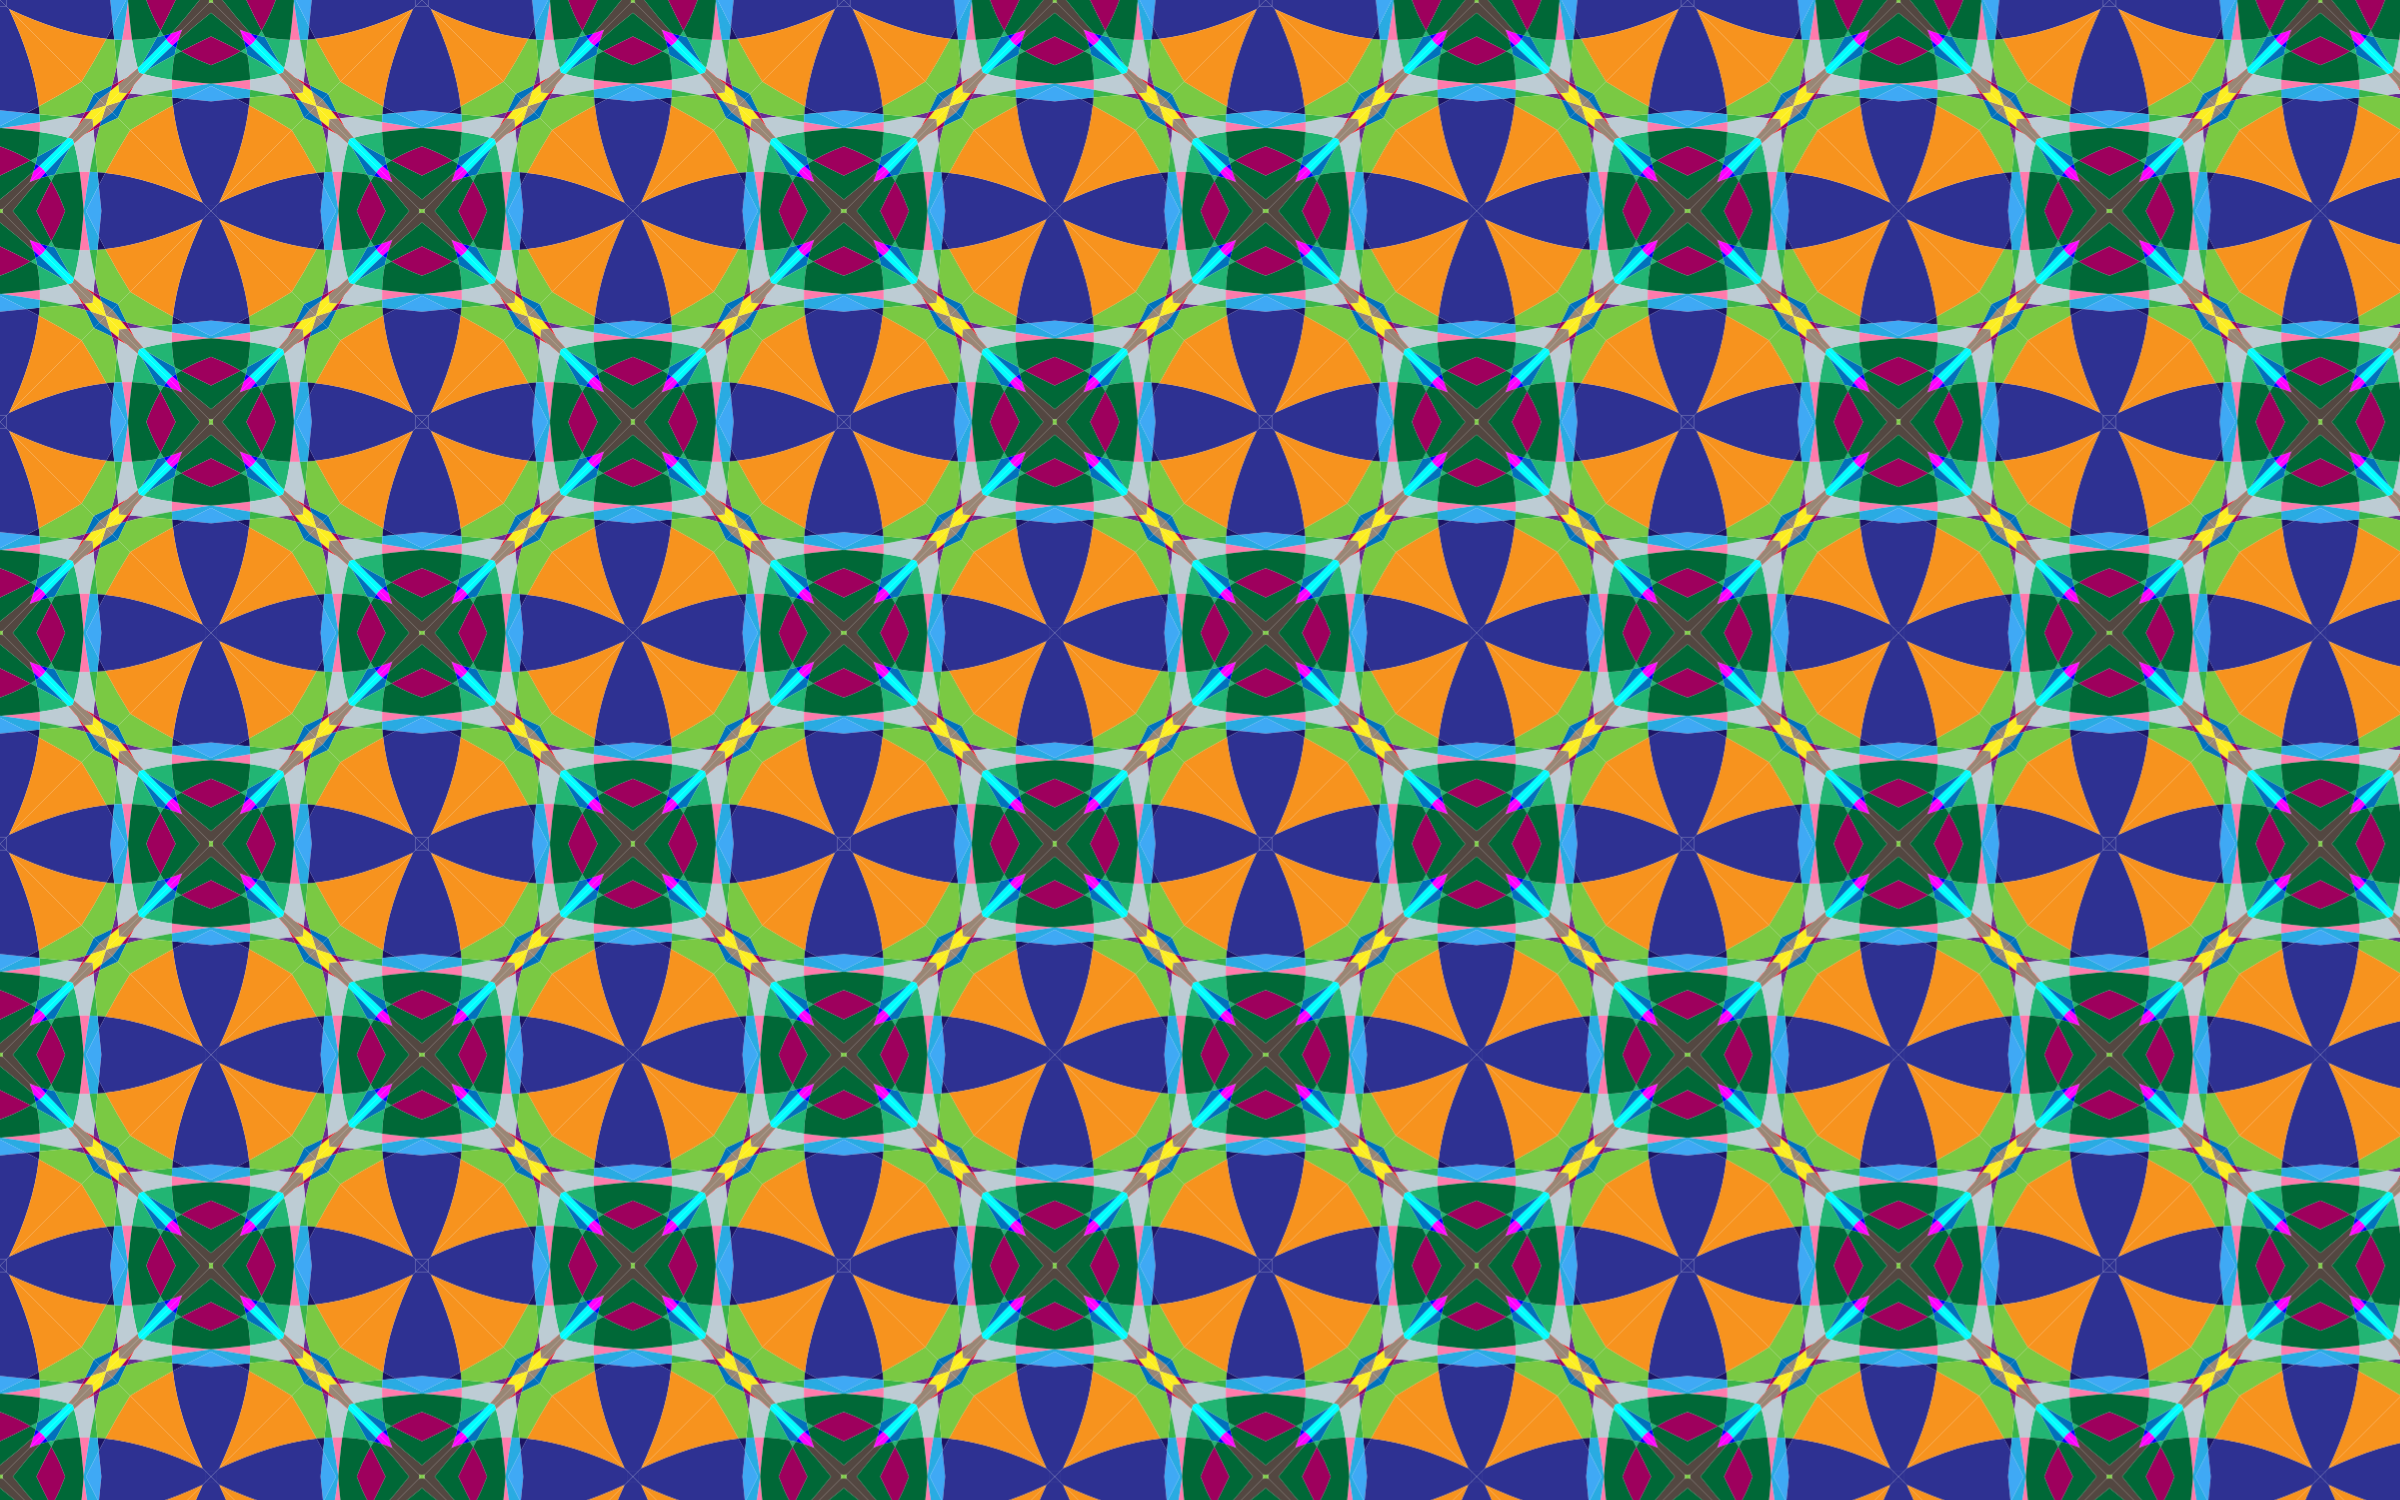 Seamless Pattern 37 by GDJ